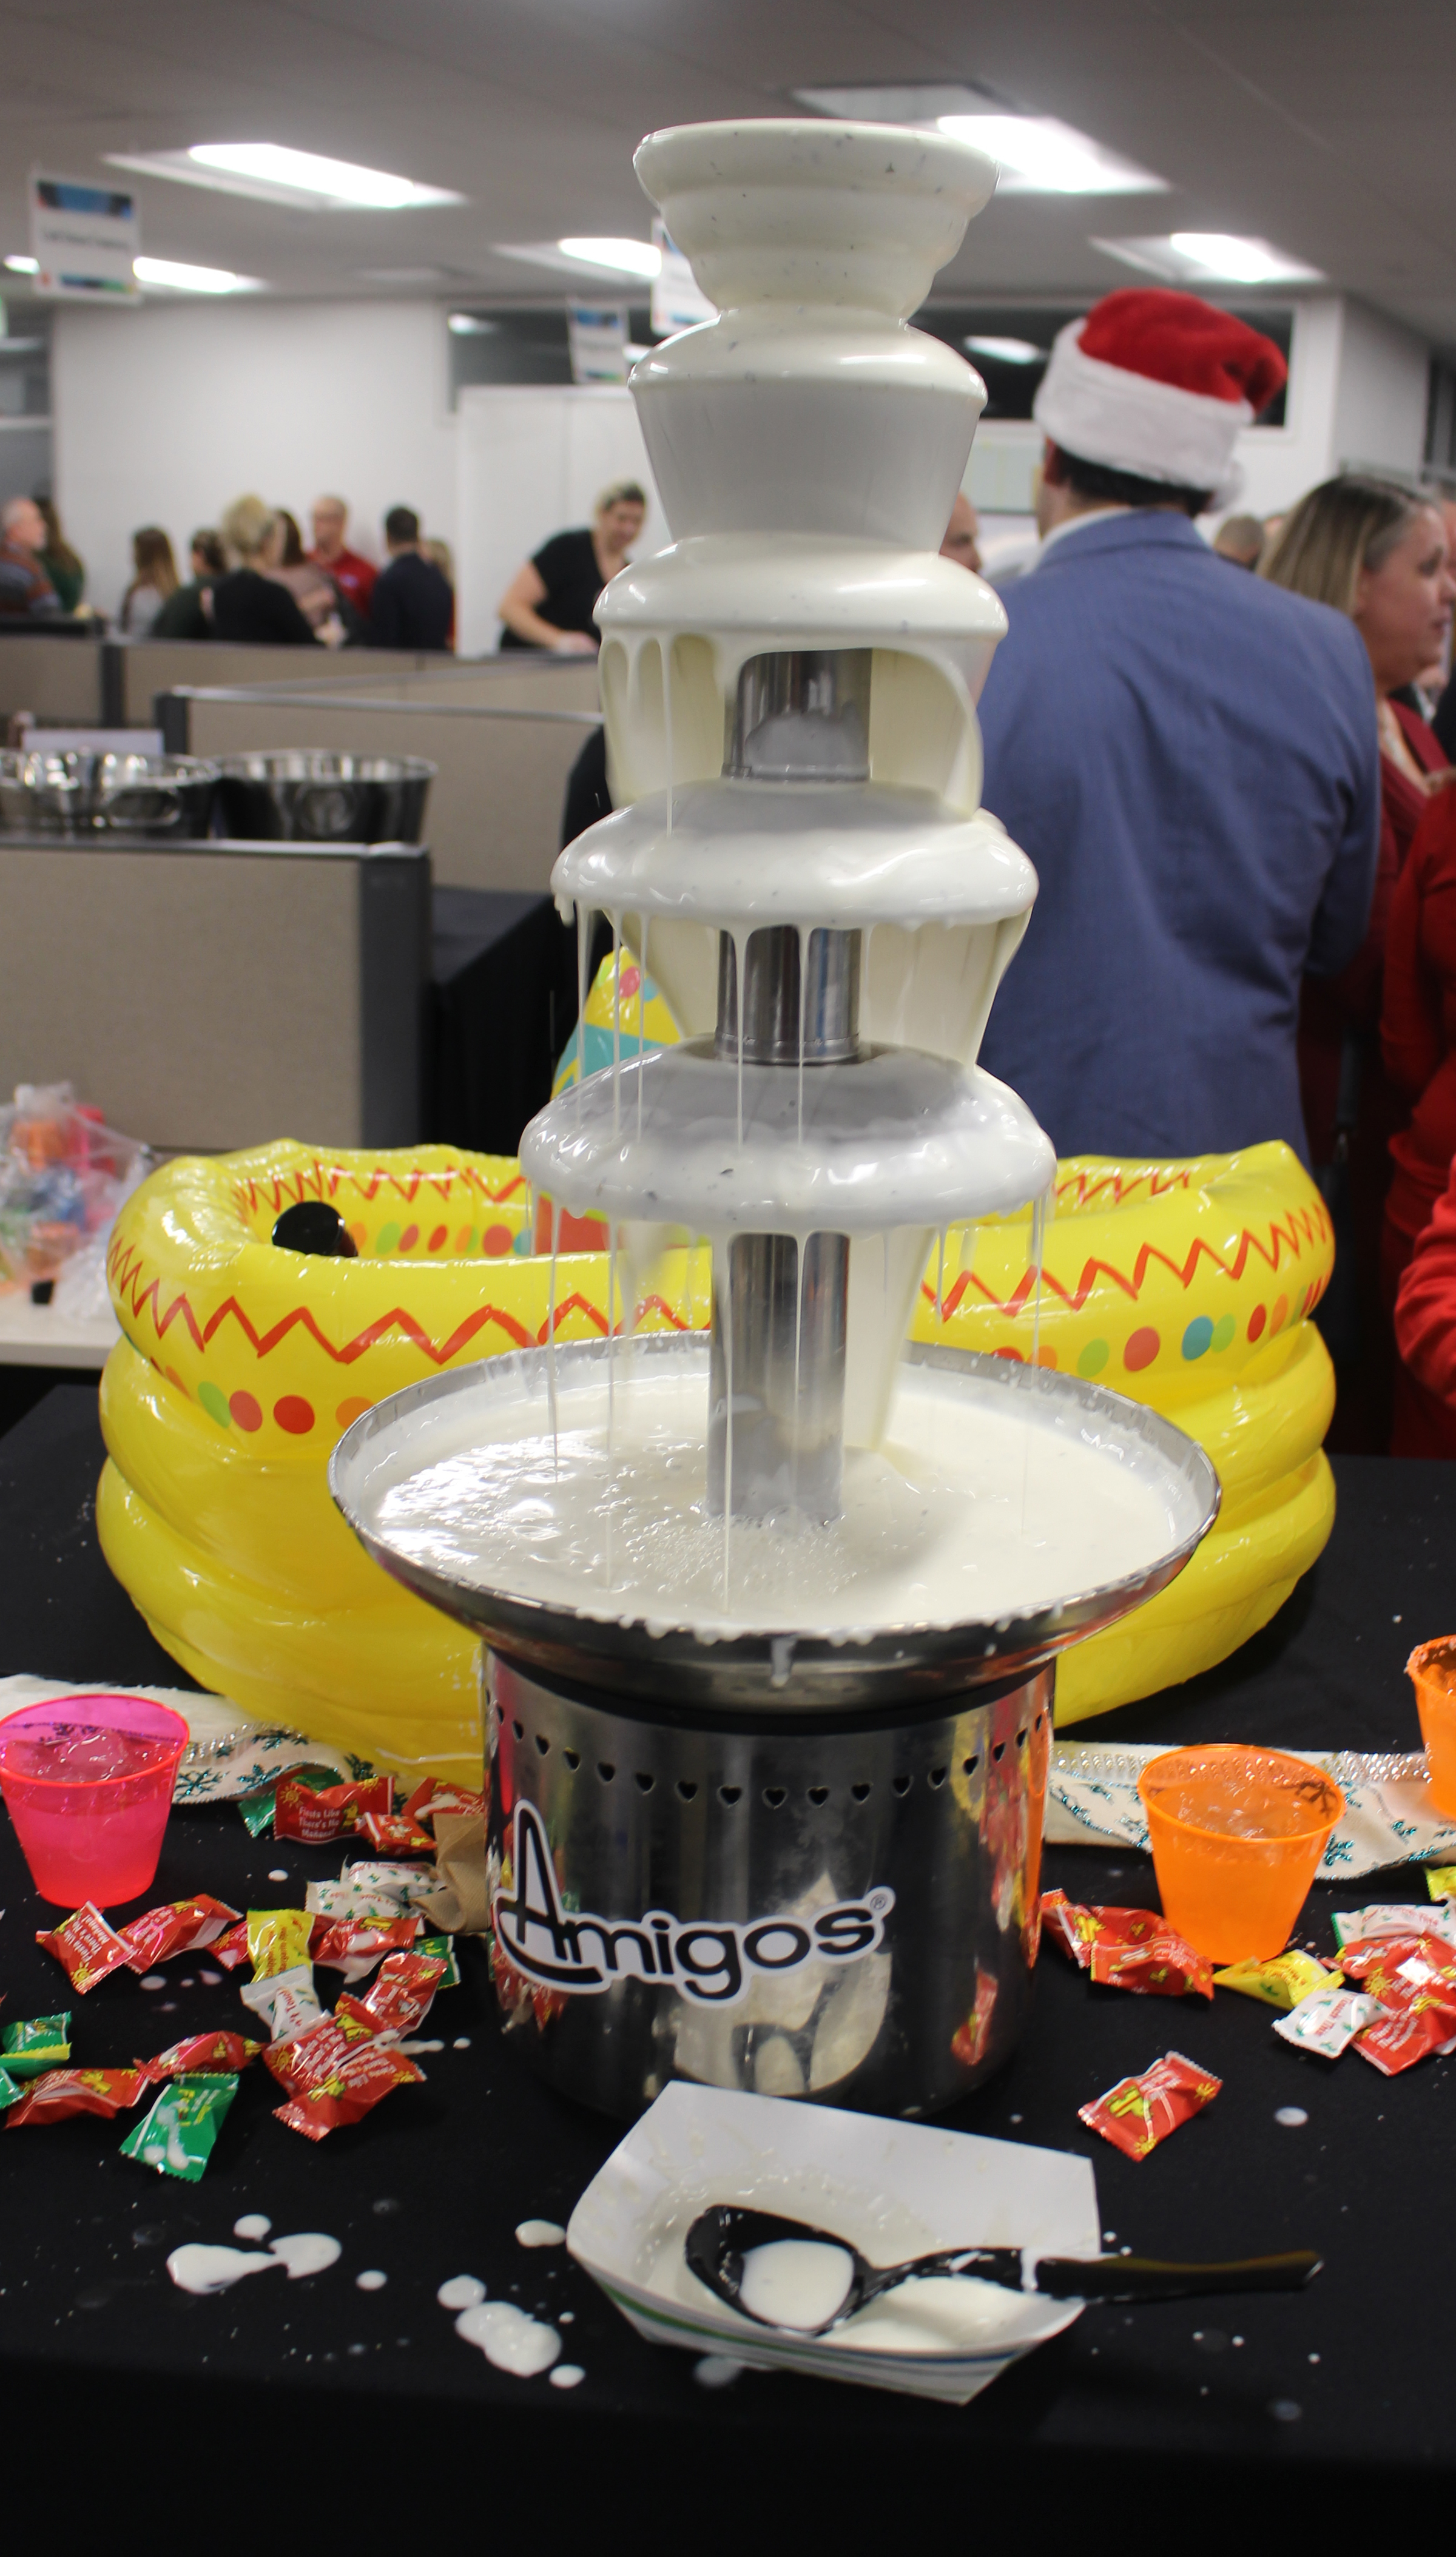 Amigos, one of the many vendors at the Member Appreciation Holiday Open House at the Greater Omaha Chamber build-ing, featured a queso fountain. (Photo by Scott Stewart)